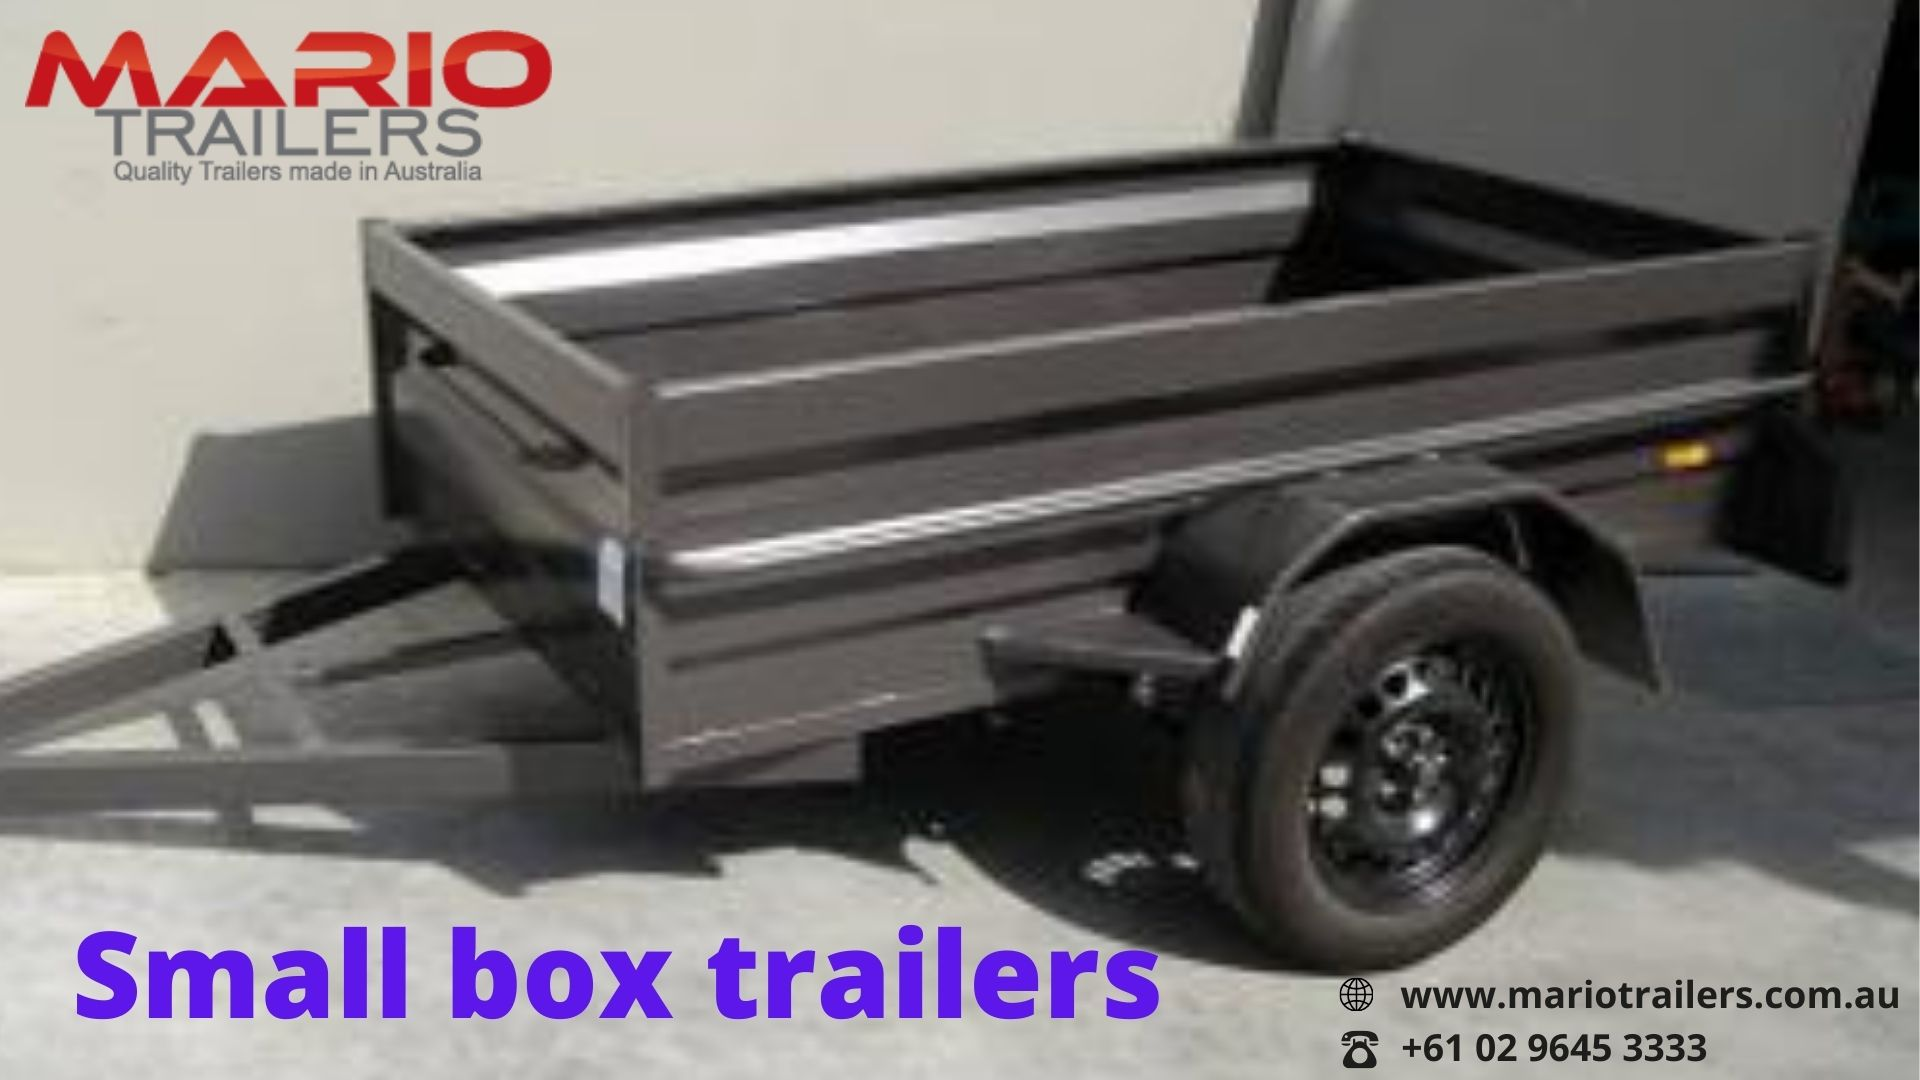 4 Questions Will Make Your Box Trailer Purchase Easy!